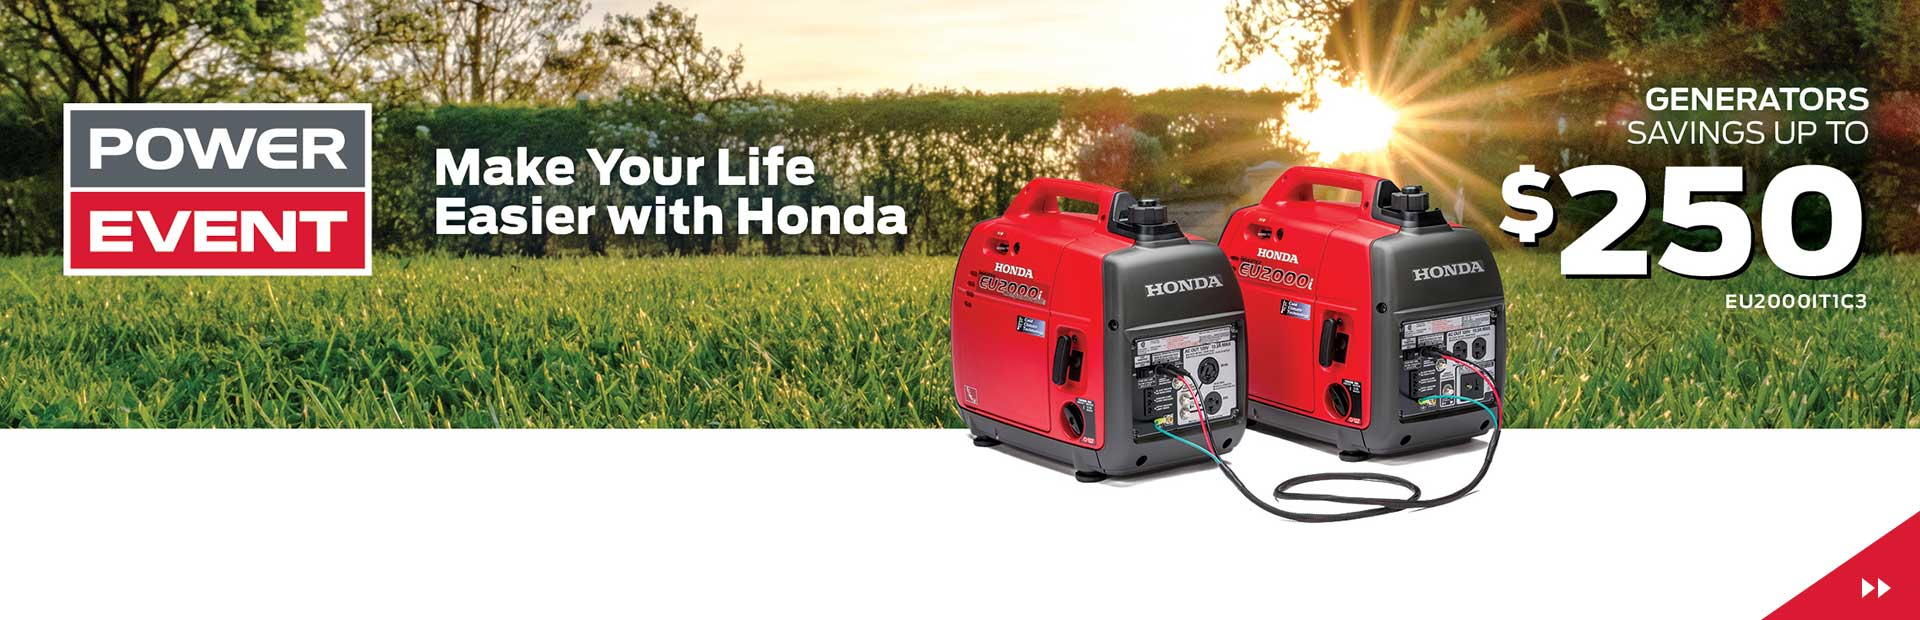 Honda Power Event is on Now! Generator Savings UP TO $250!